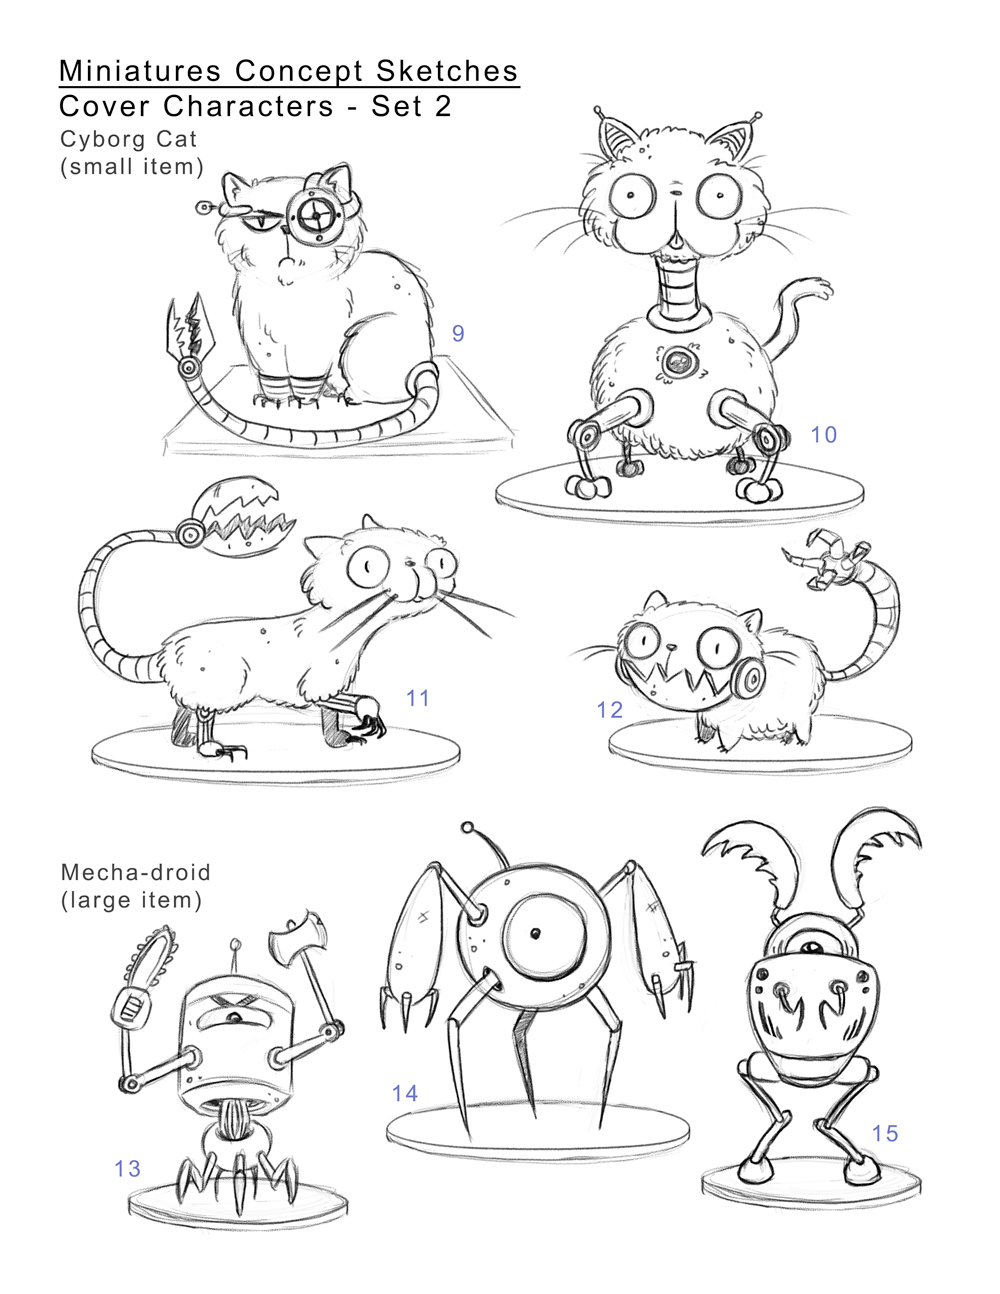 Character concepts for Miniatures book cover